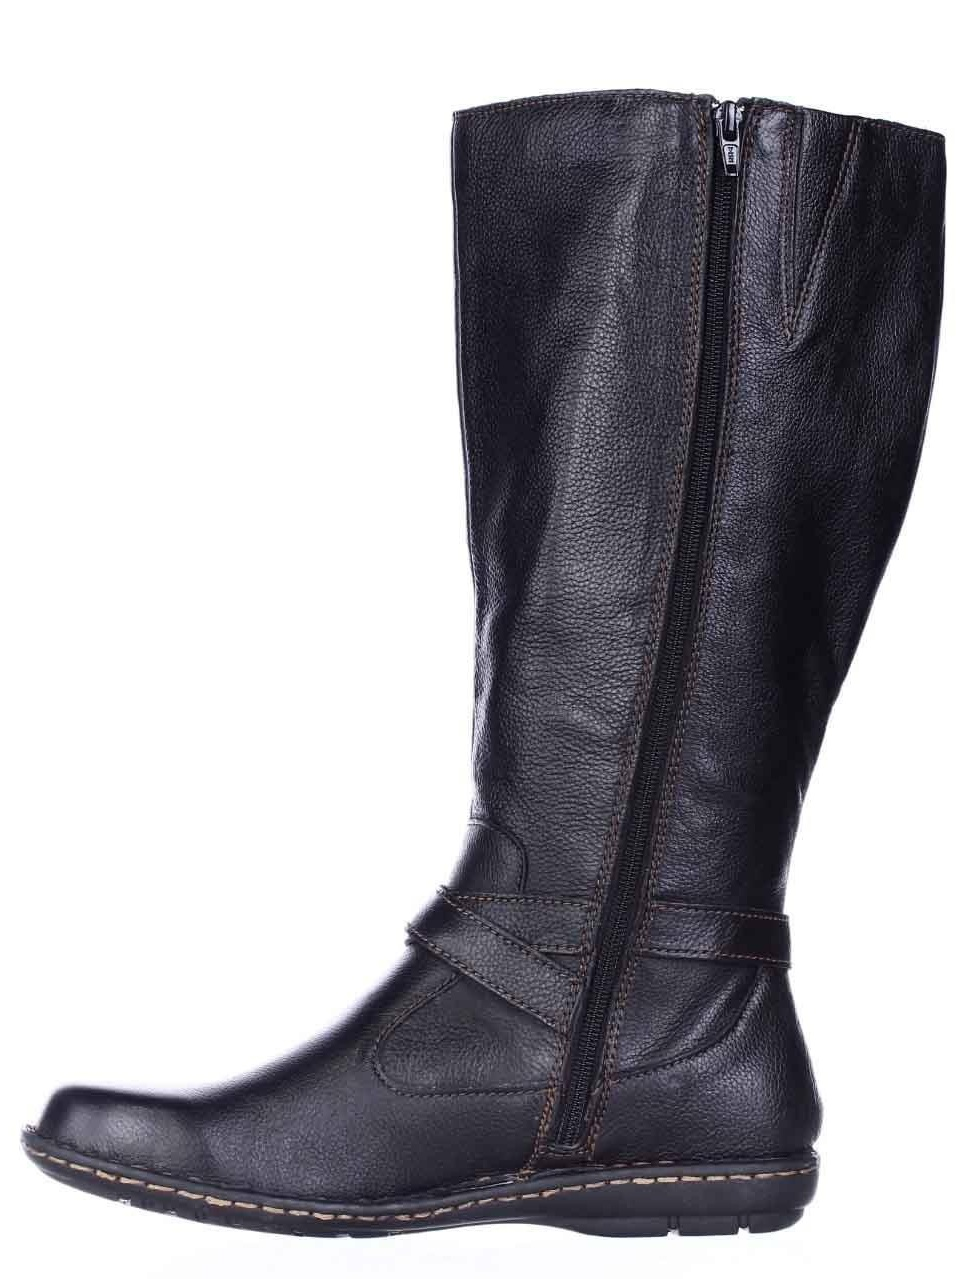 B.O.C Toe Womens Barbana Leather Round Toe B.O.C Mid-Calf Fashion Boots ad7afc